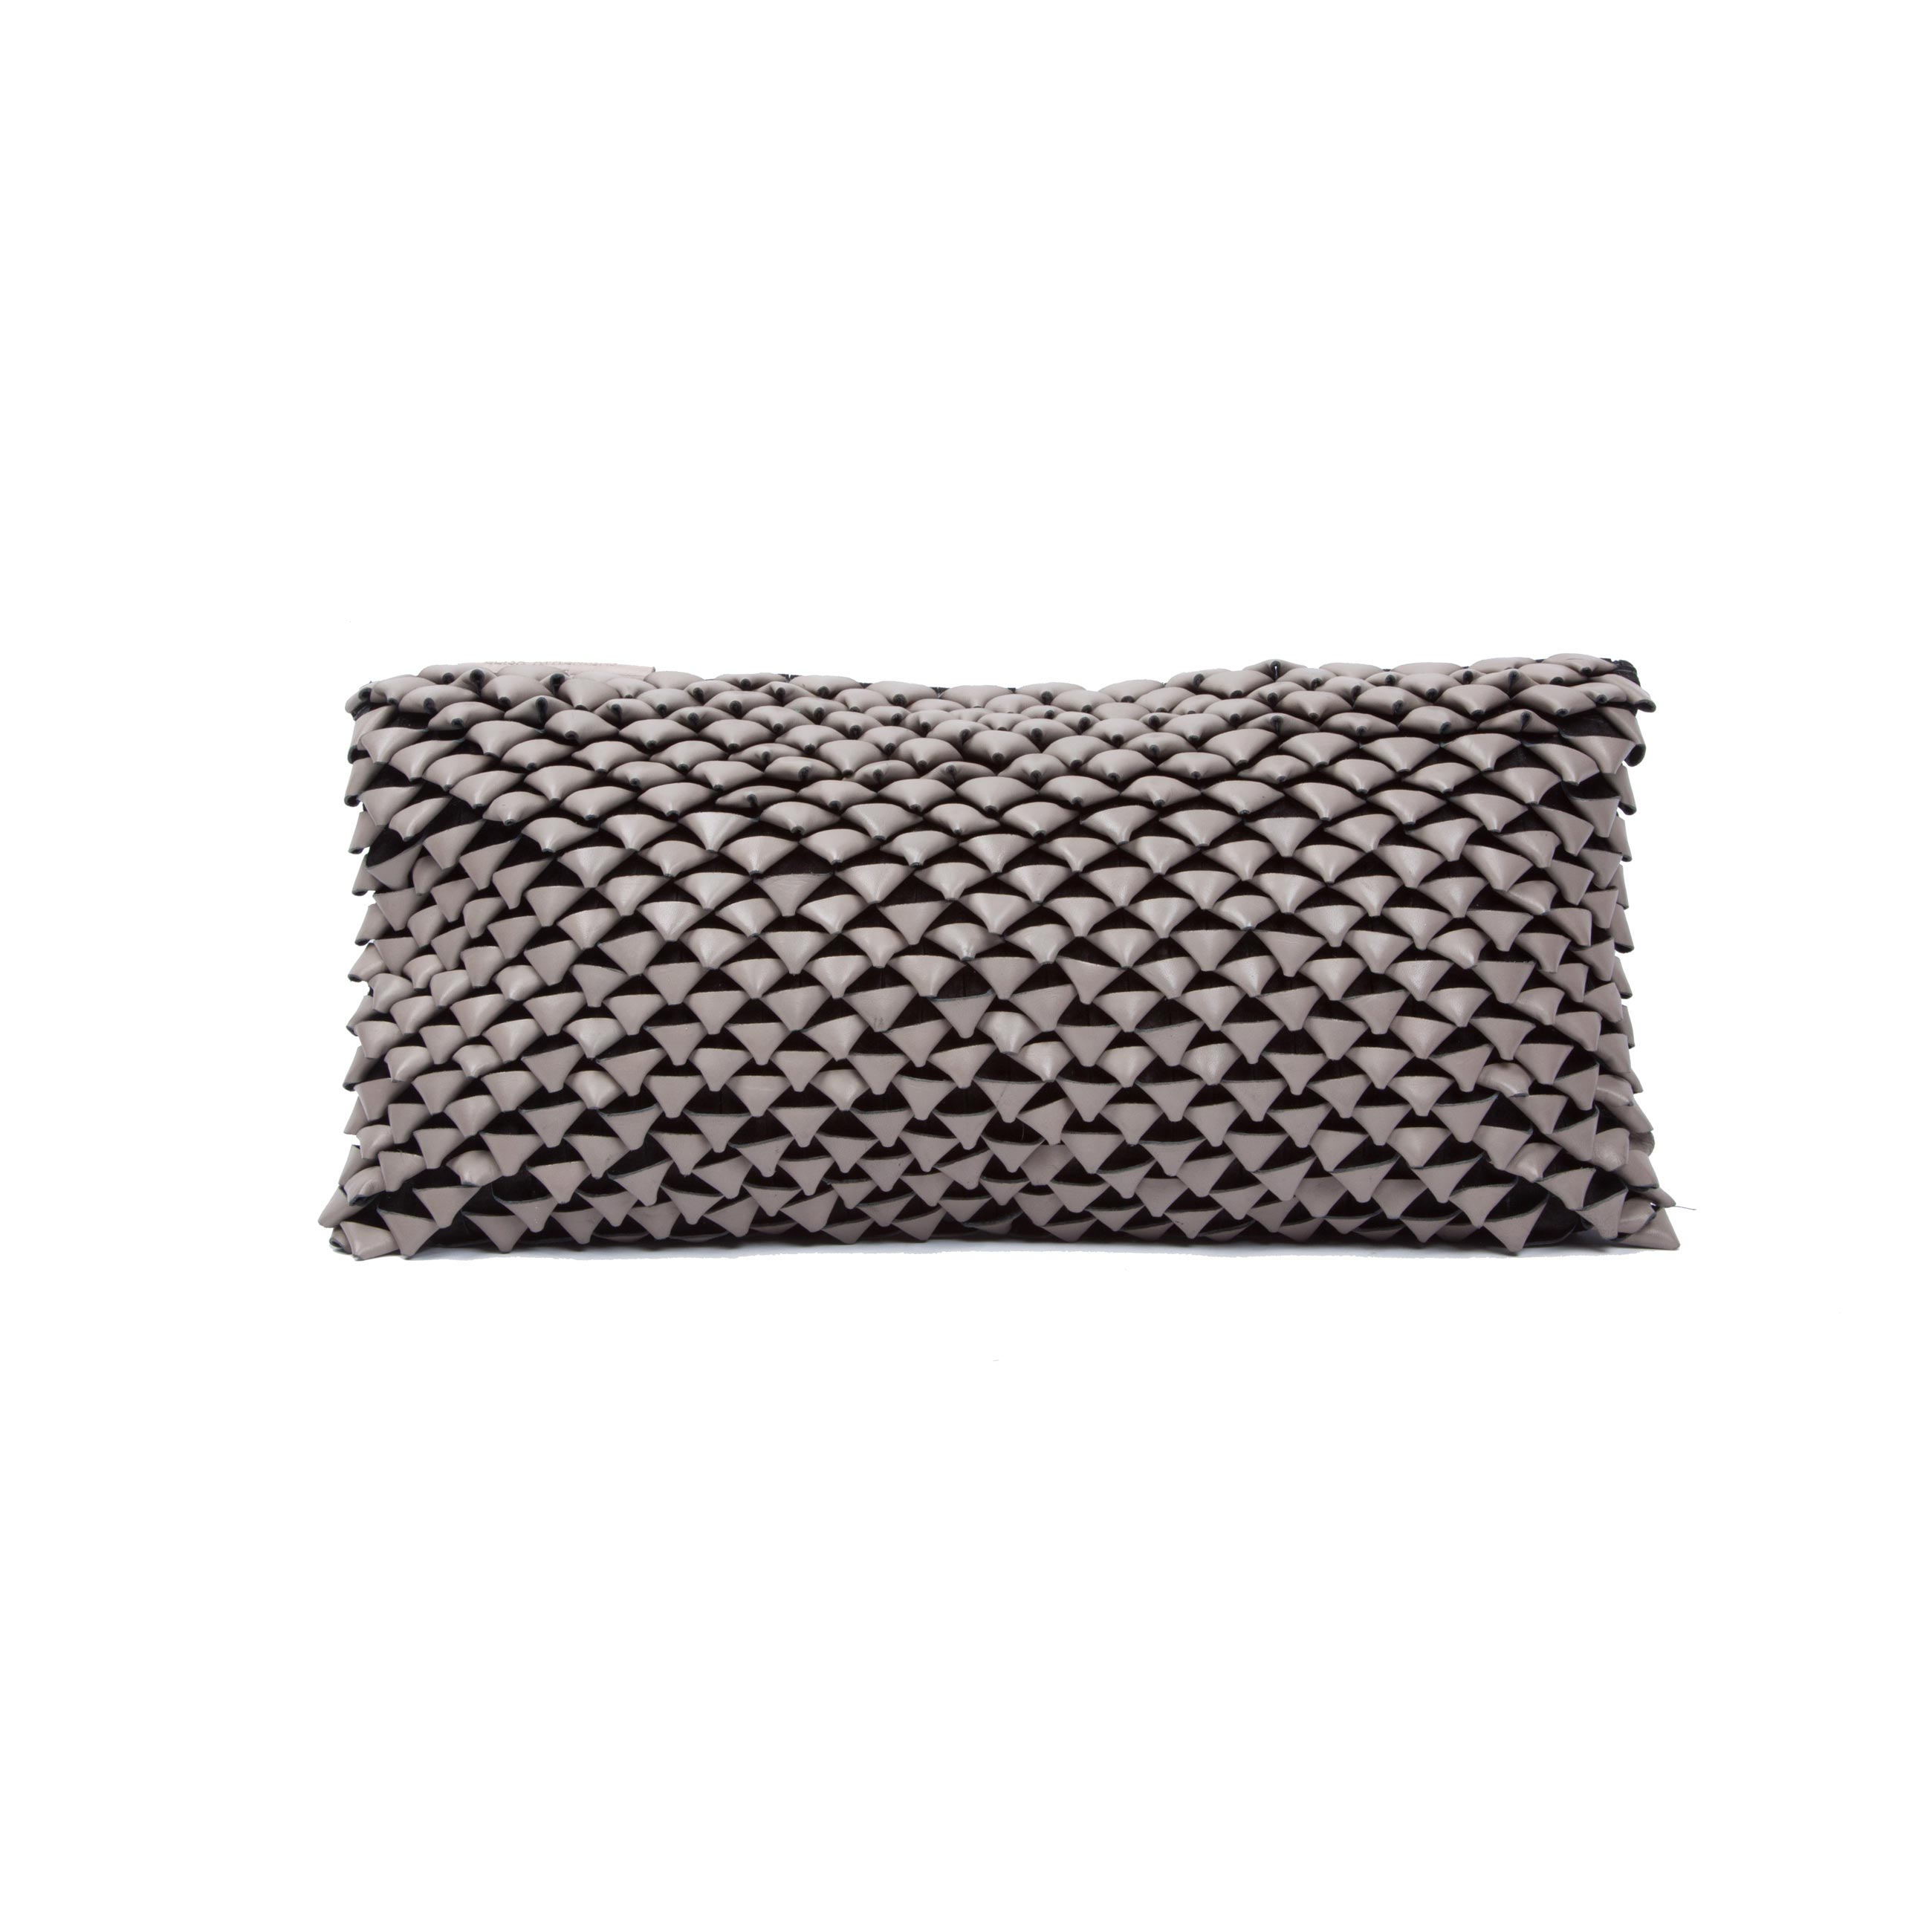 Shell Woven Leather Cushion Small